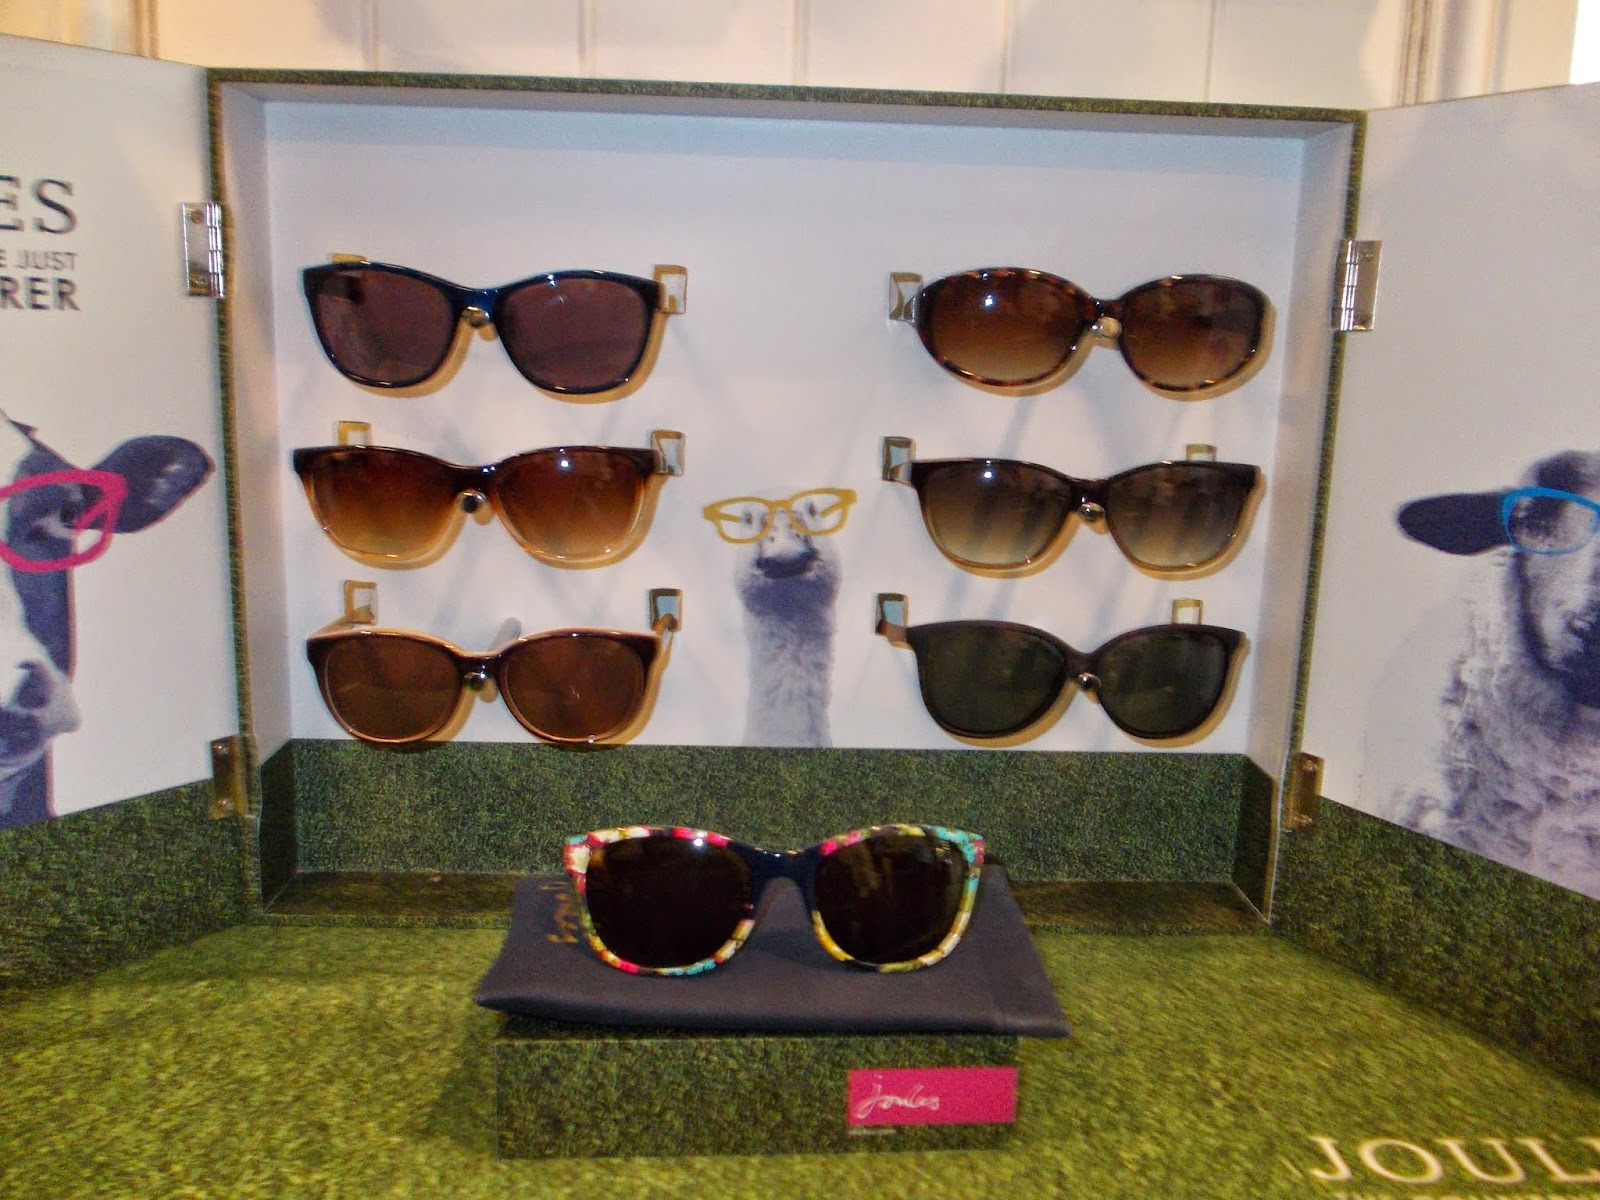 b187a9c7c32 This season Joules and Vision Express teamed up together to launch a  womenswear and kidswear range of sunglasses and optical models